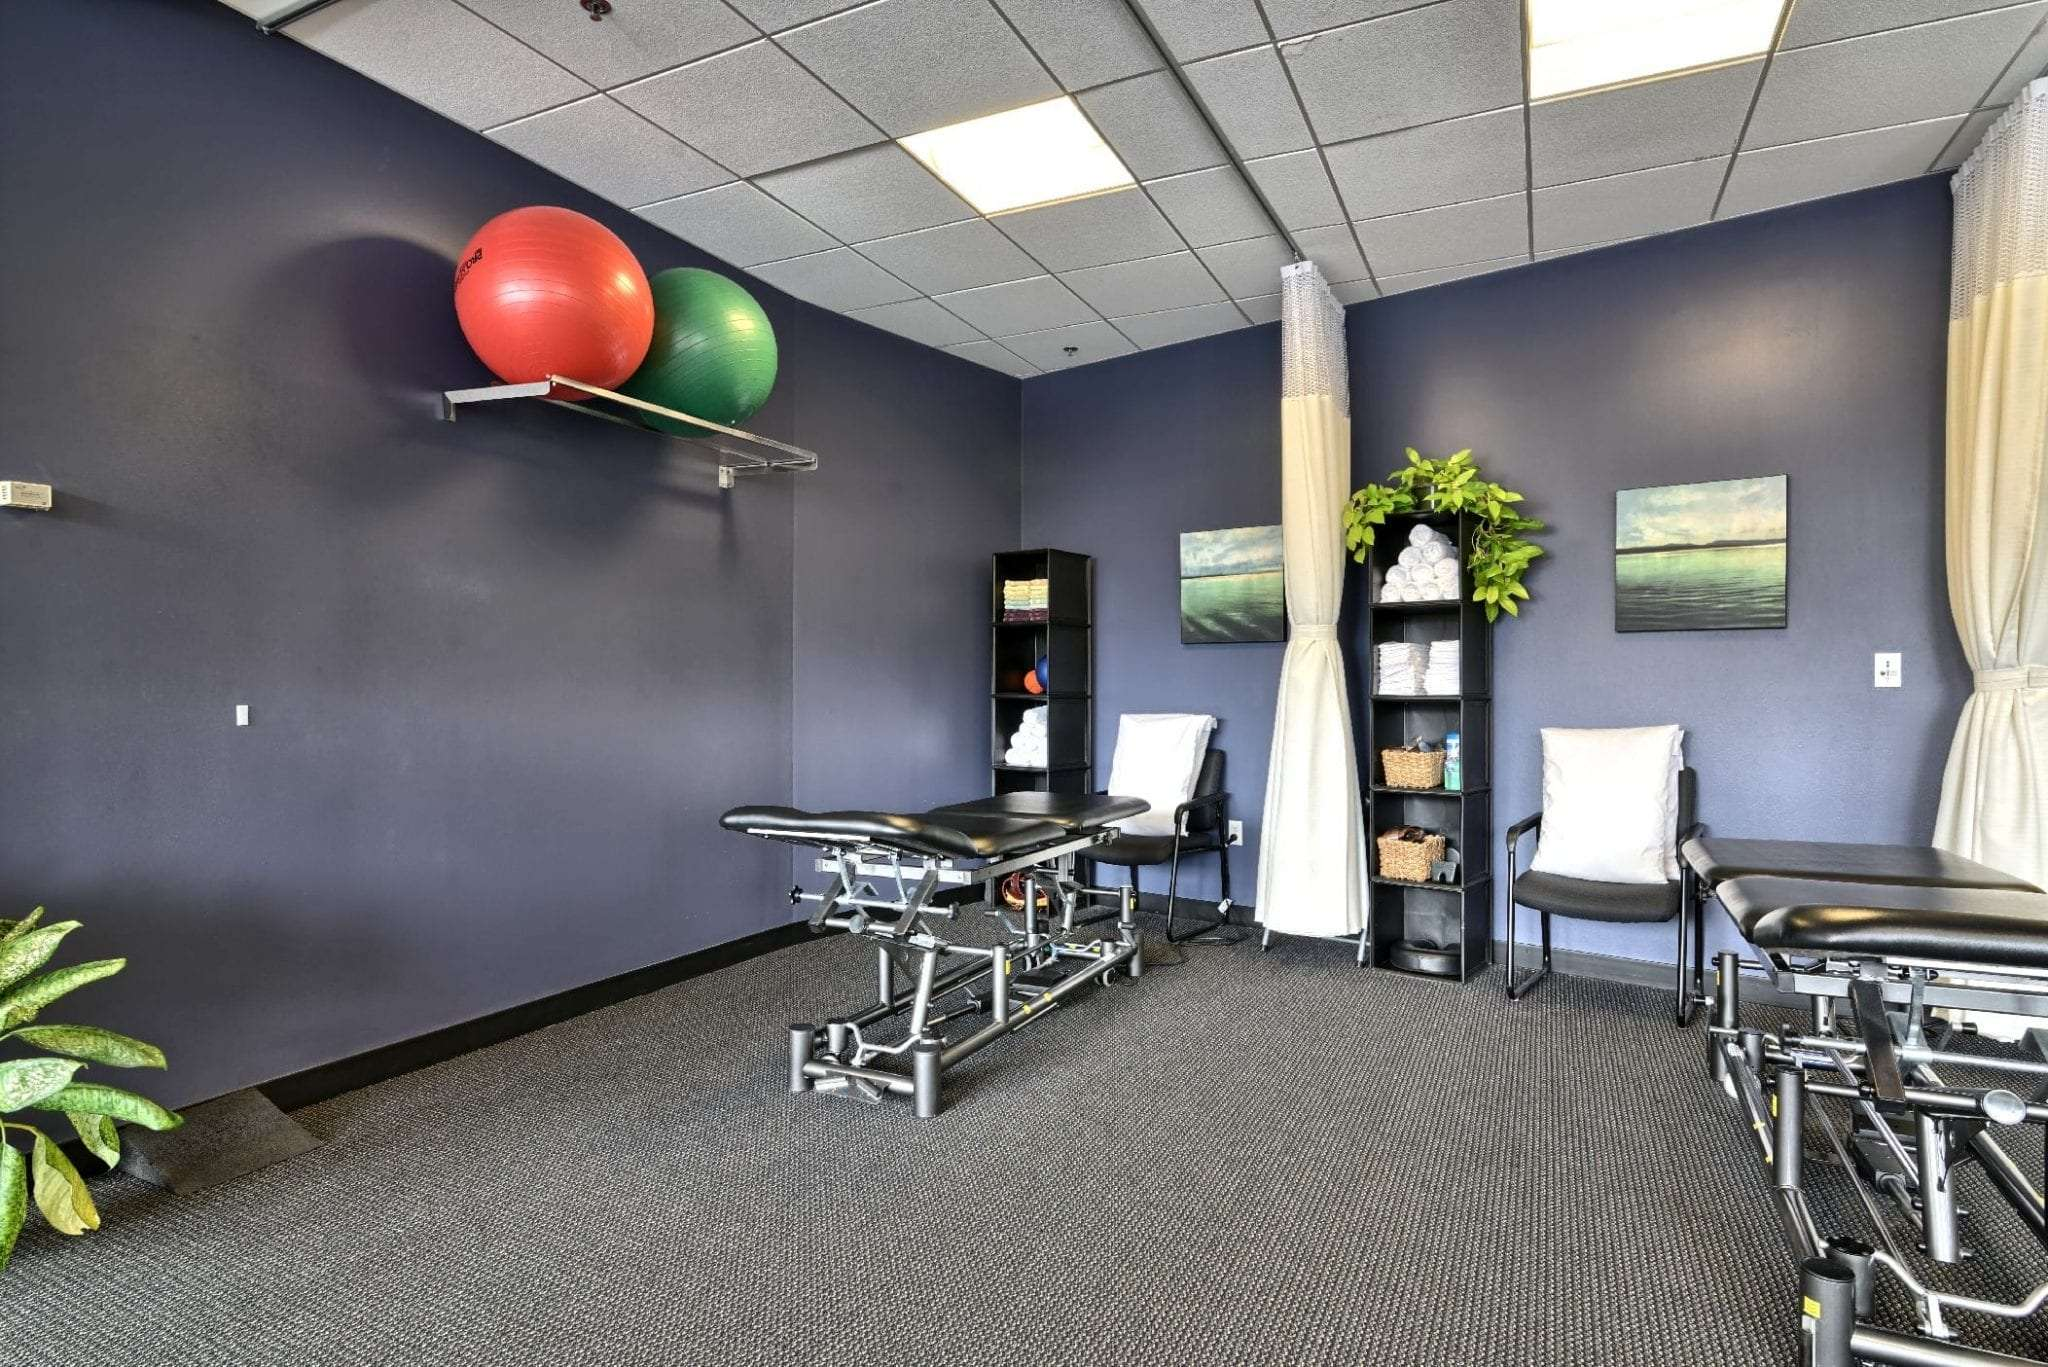 An image of two stretch beds and two exercise balls at our physical therapy clinic in Boston, Massachusetts.